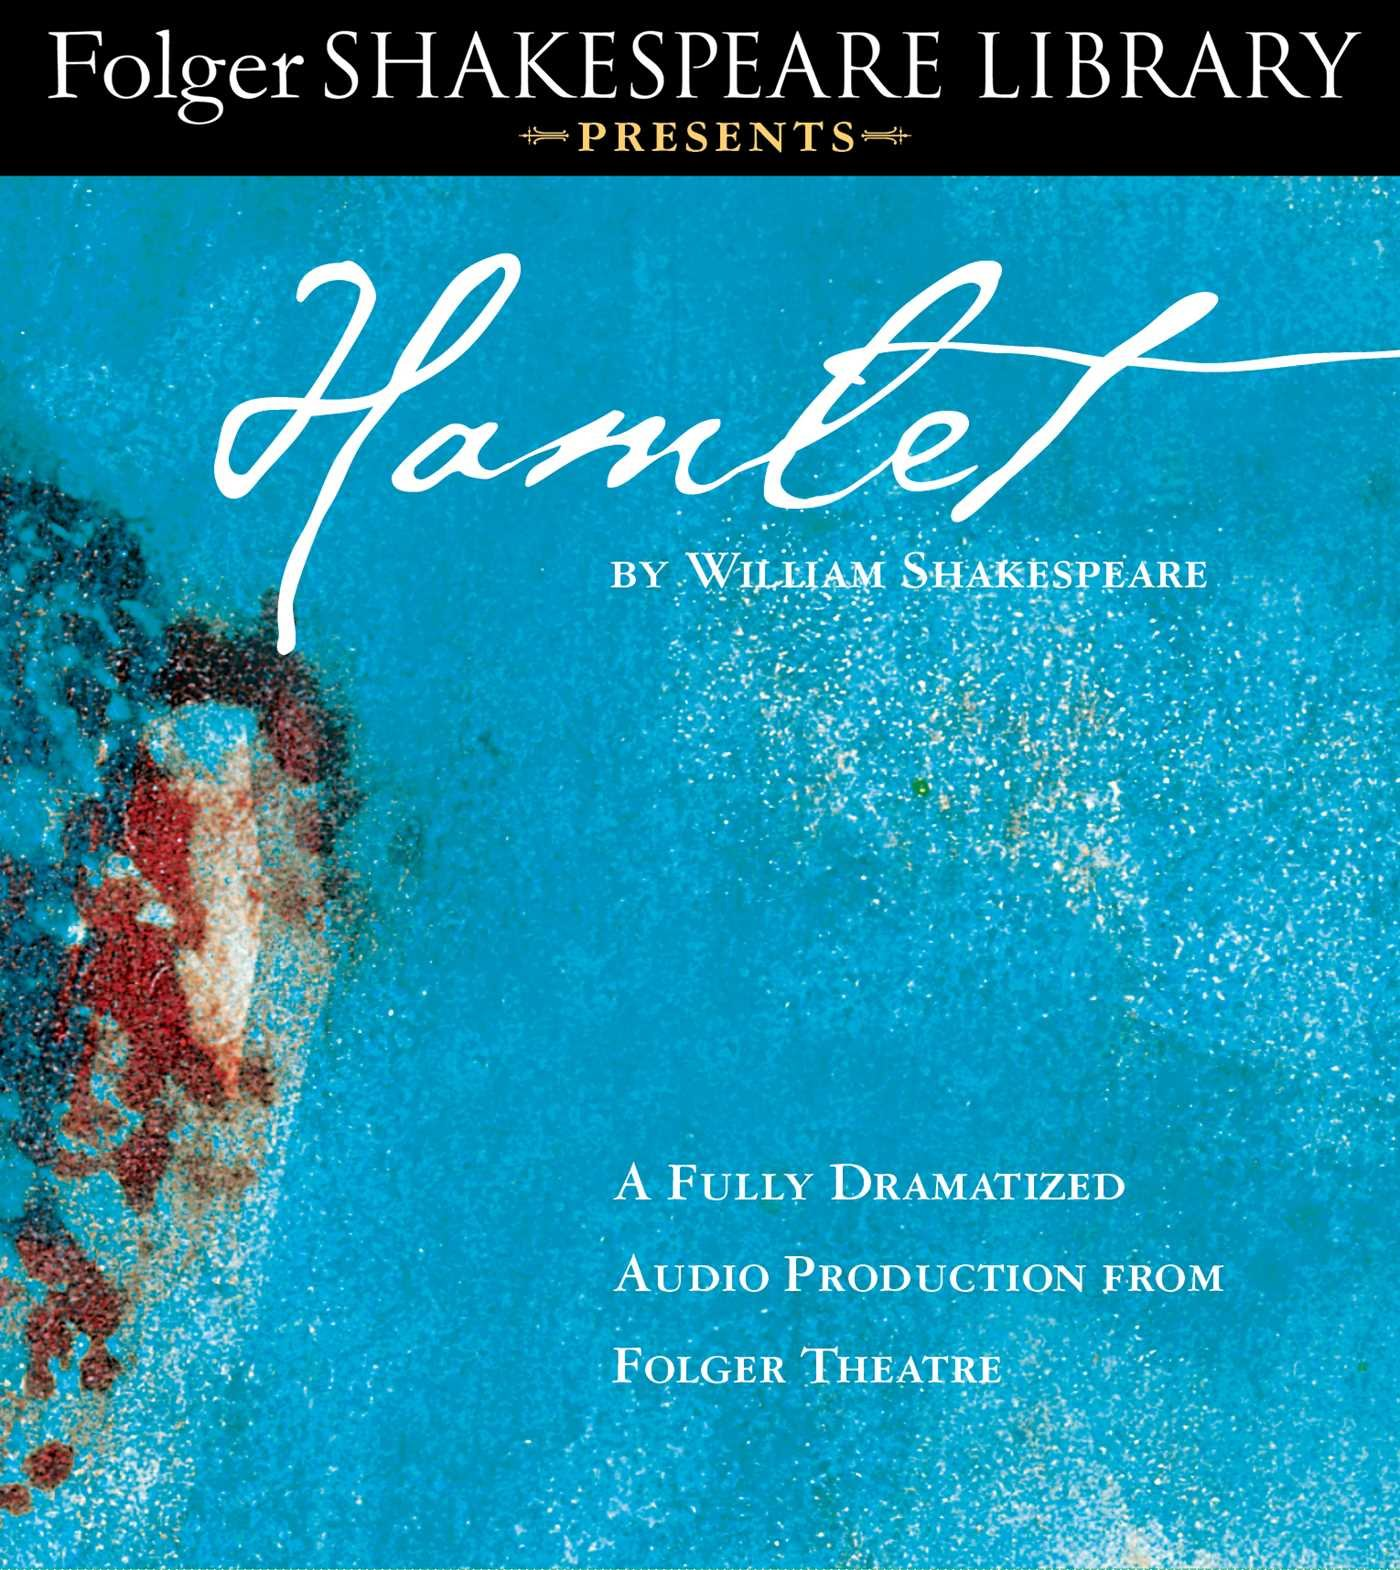 Hamlet: Fully Dramatized Audio Edition (Folger Shakespeare Library  Presents): William Shakespeare, Full Cast Dramatization: 9781442374362:  Amazon.com: Books